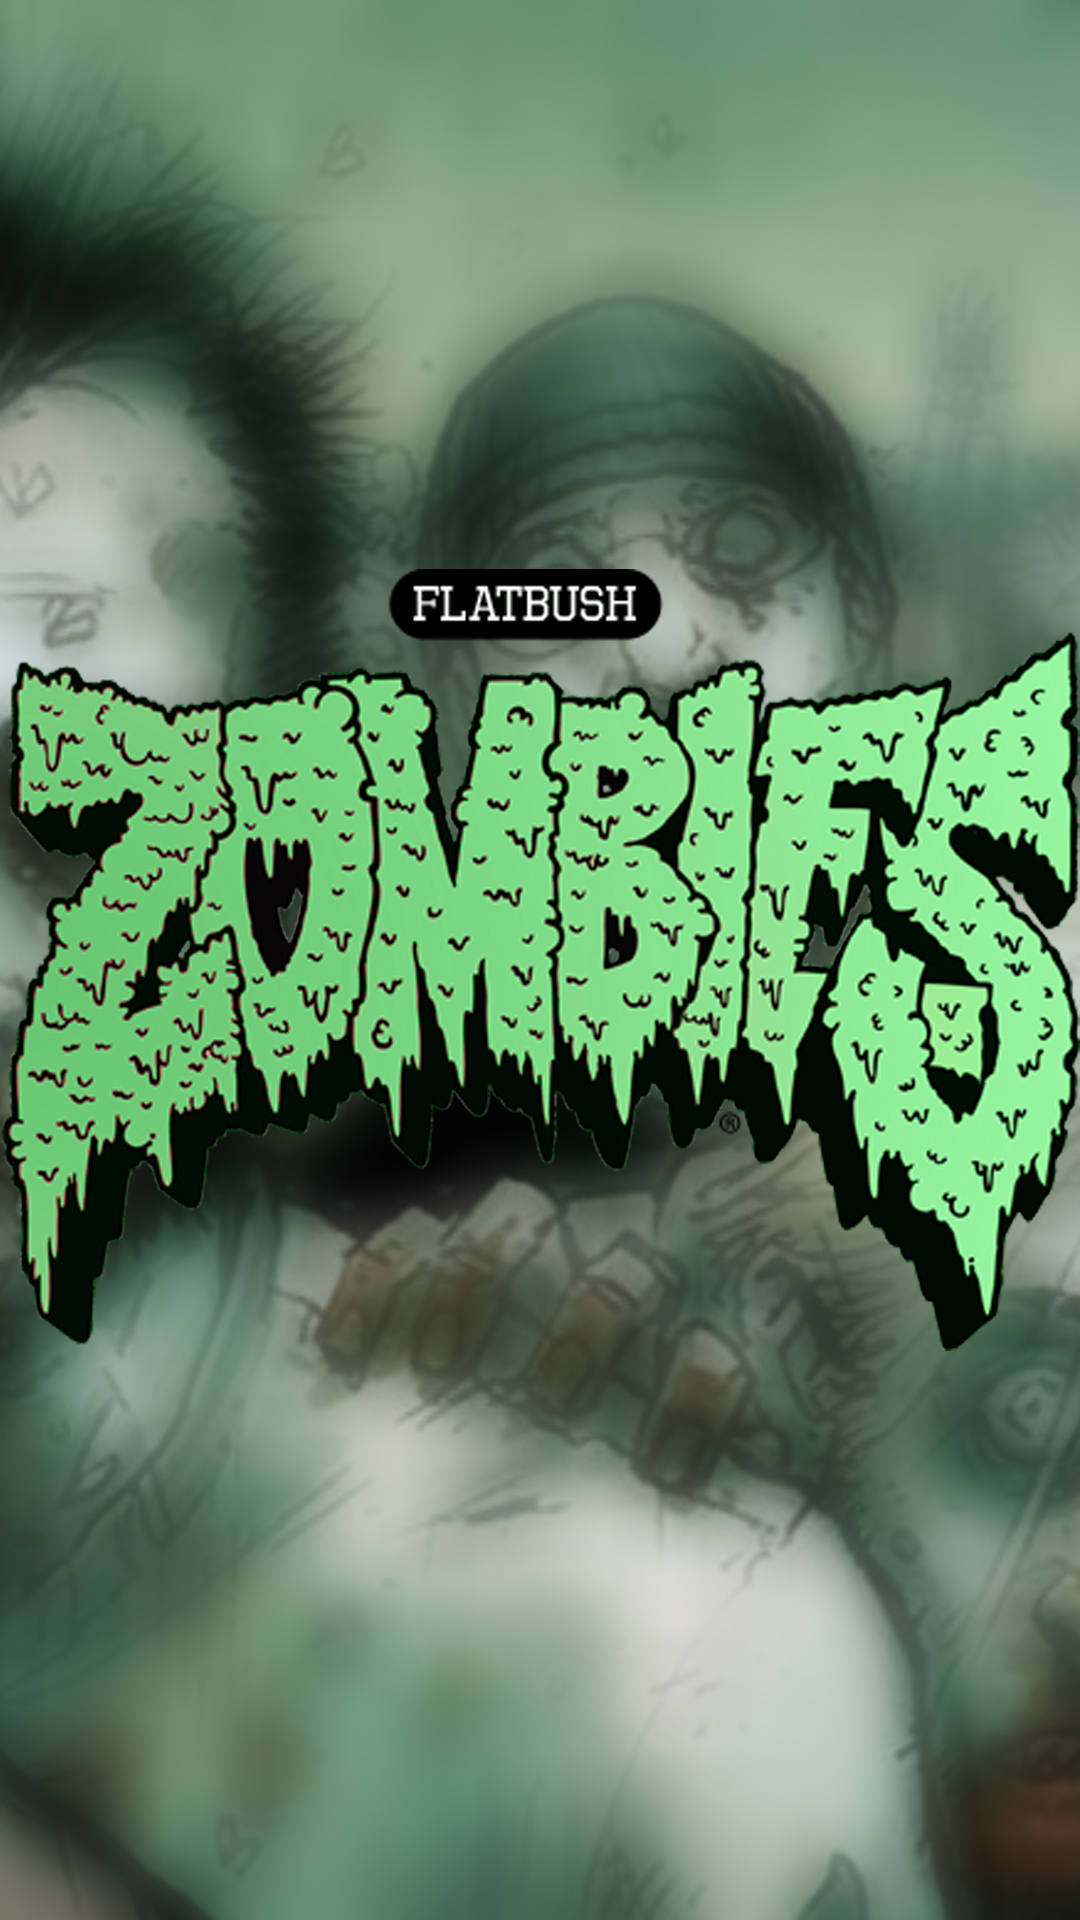 Flatbush Zombies Phone Wallpaper By Grizztin On Newgrounds